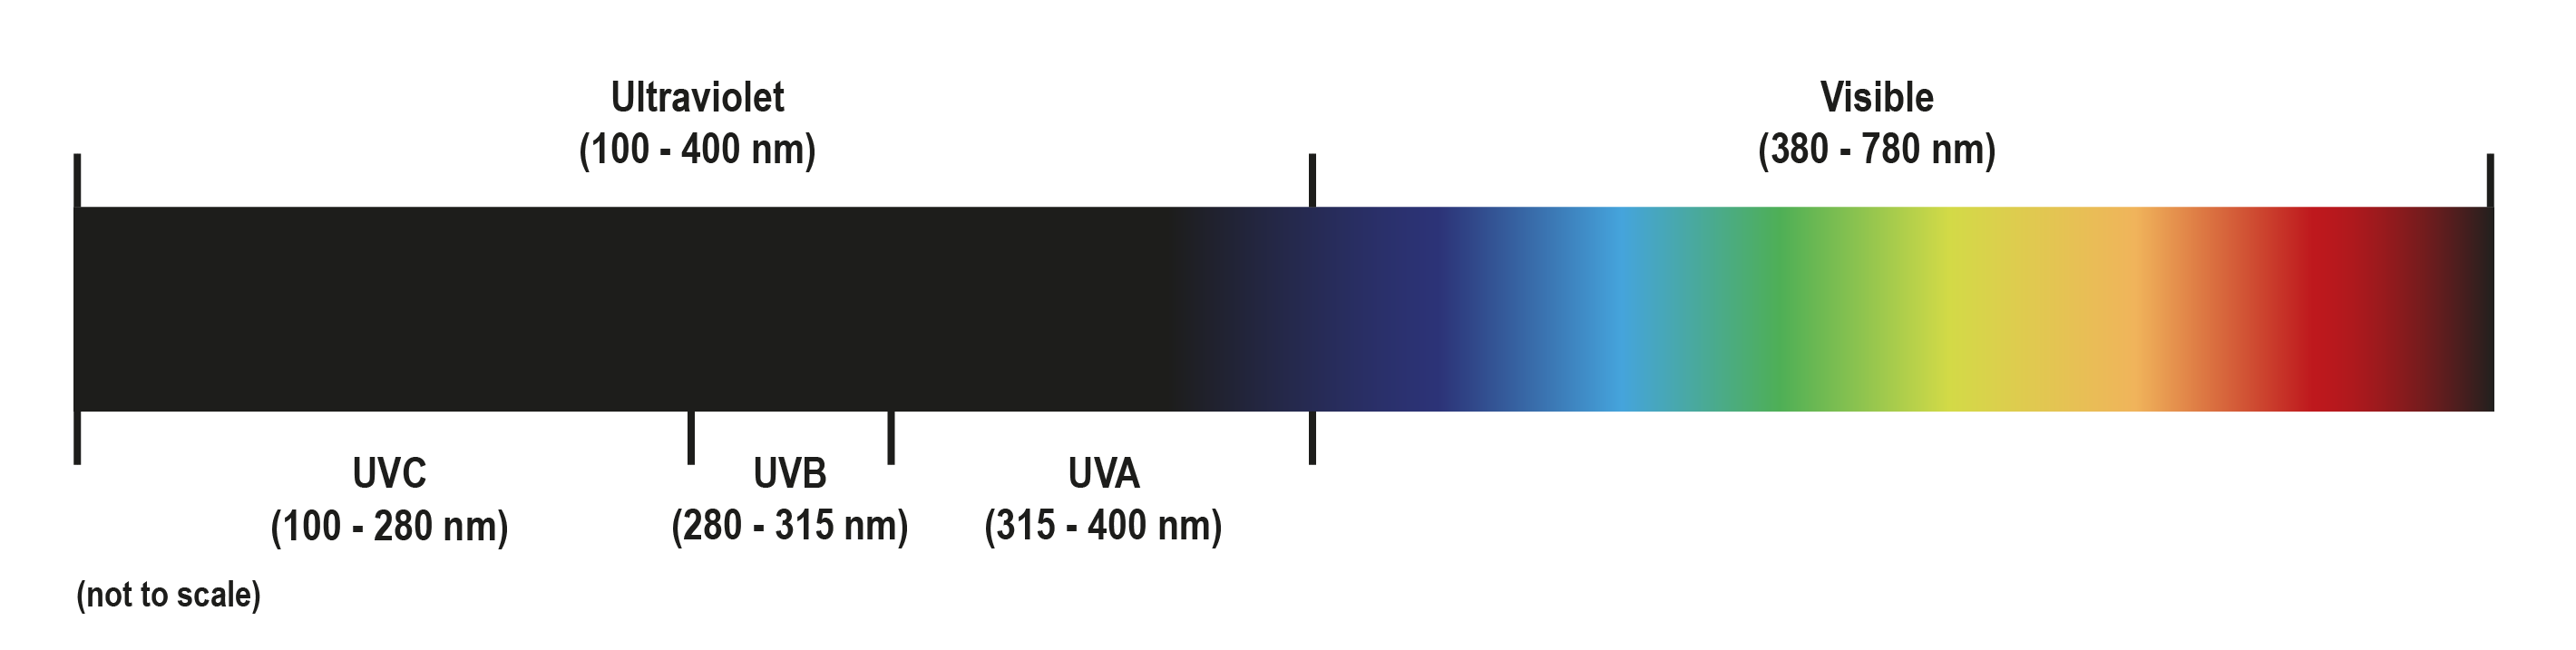 The electromagnetic (EM) spectrum from UV to visible light